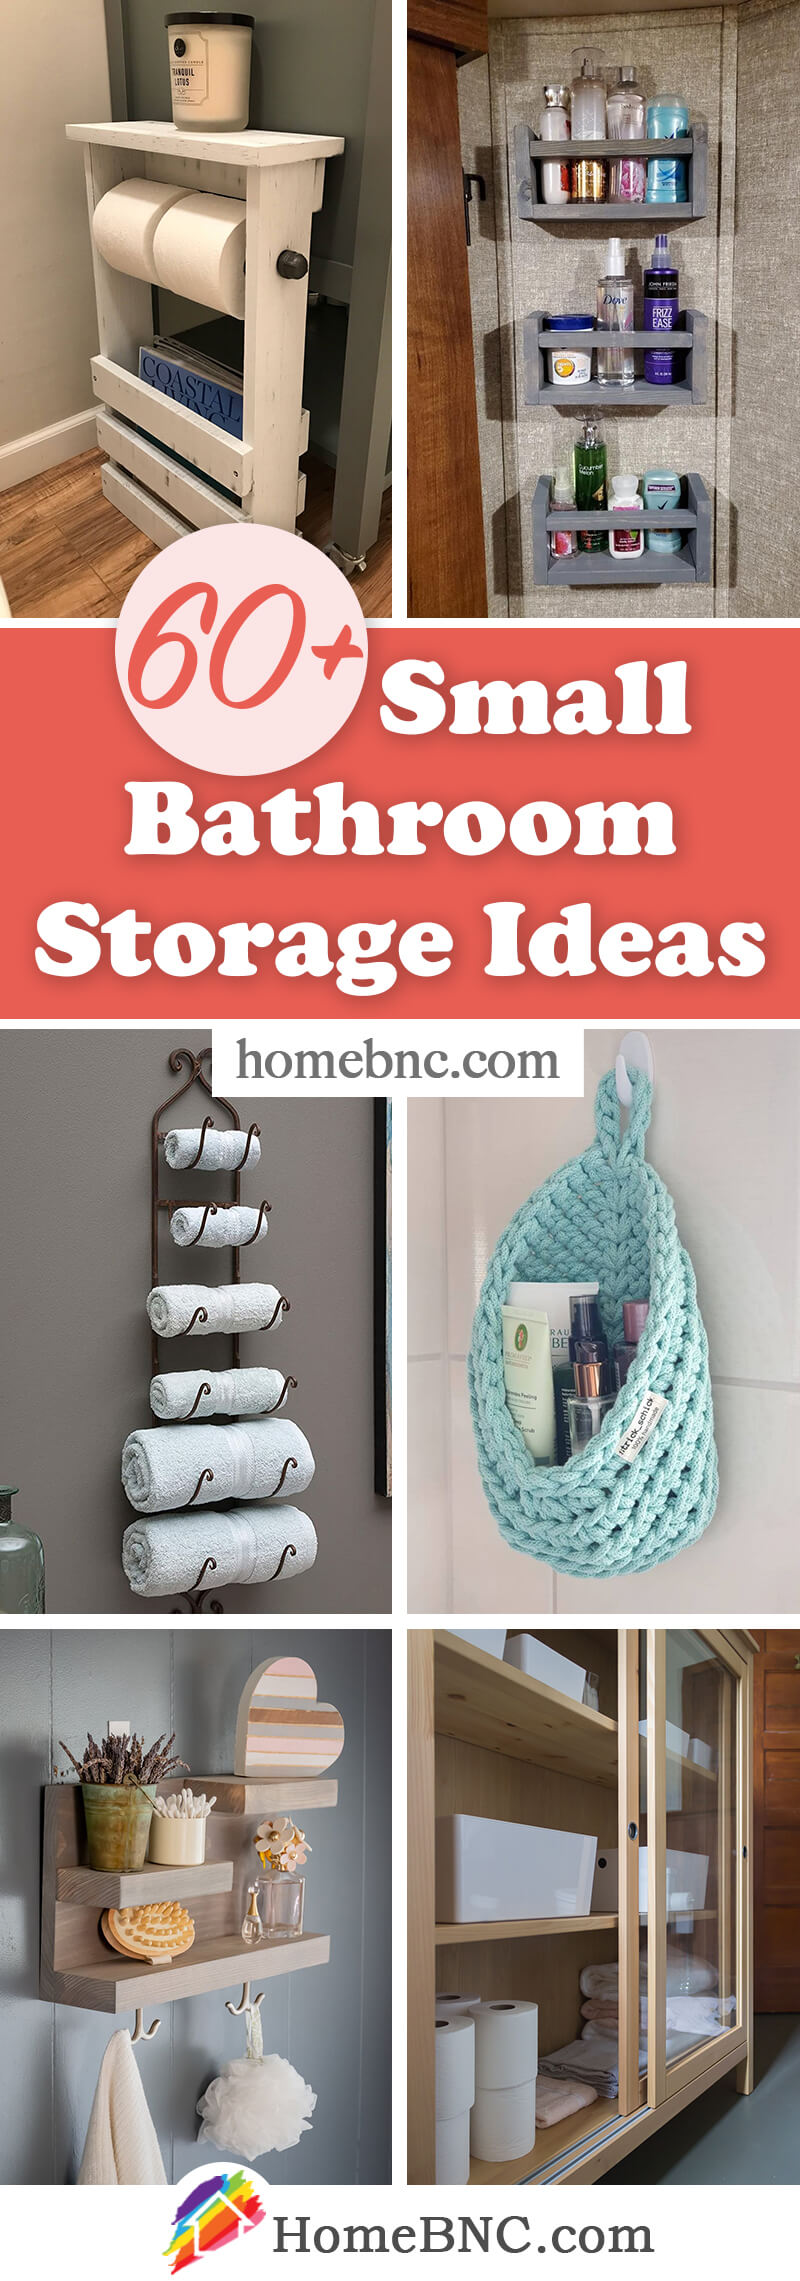 11+ Best Small Bathroom Storage Ideas and Tips for 11